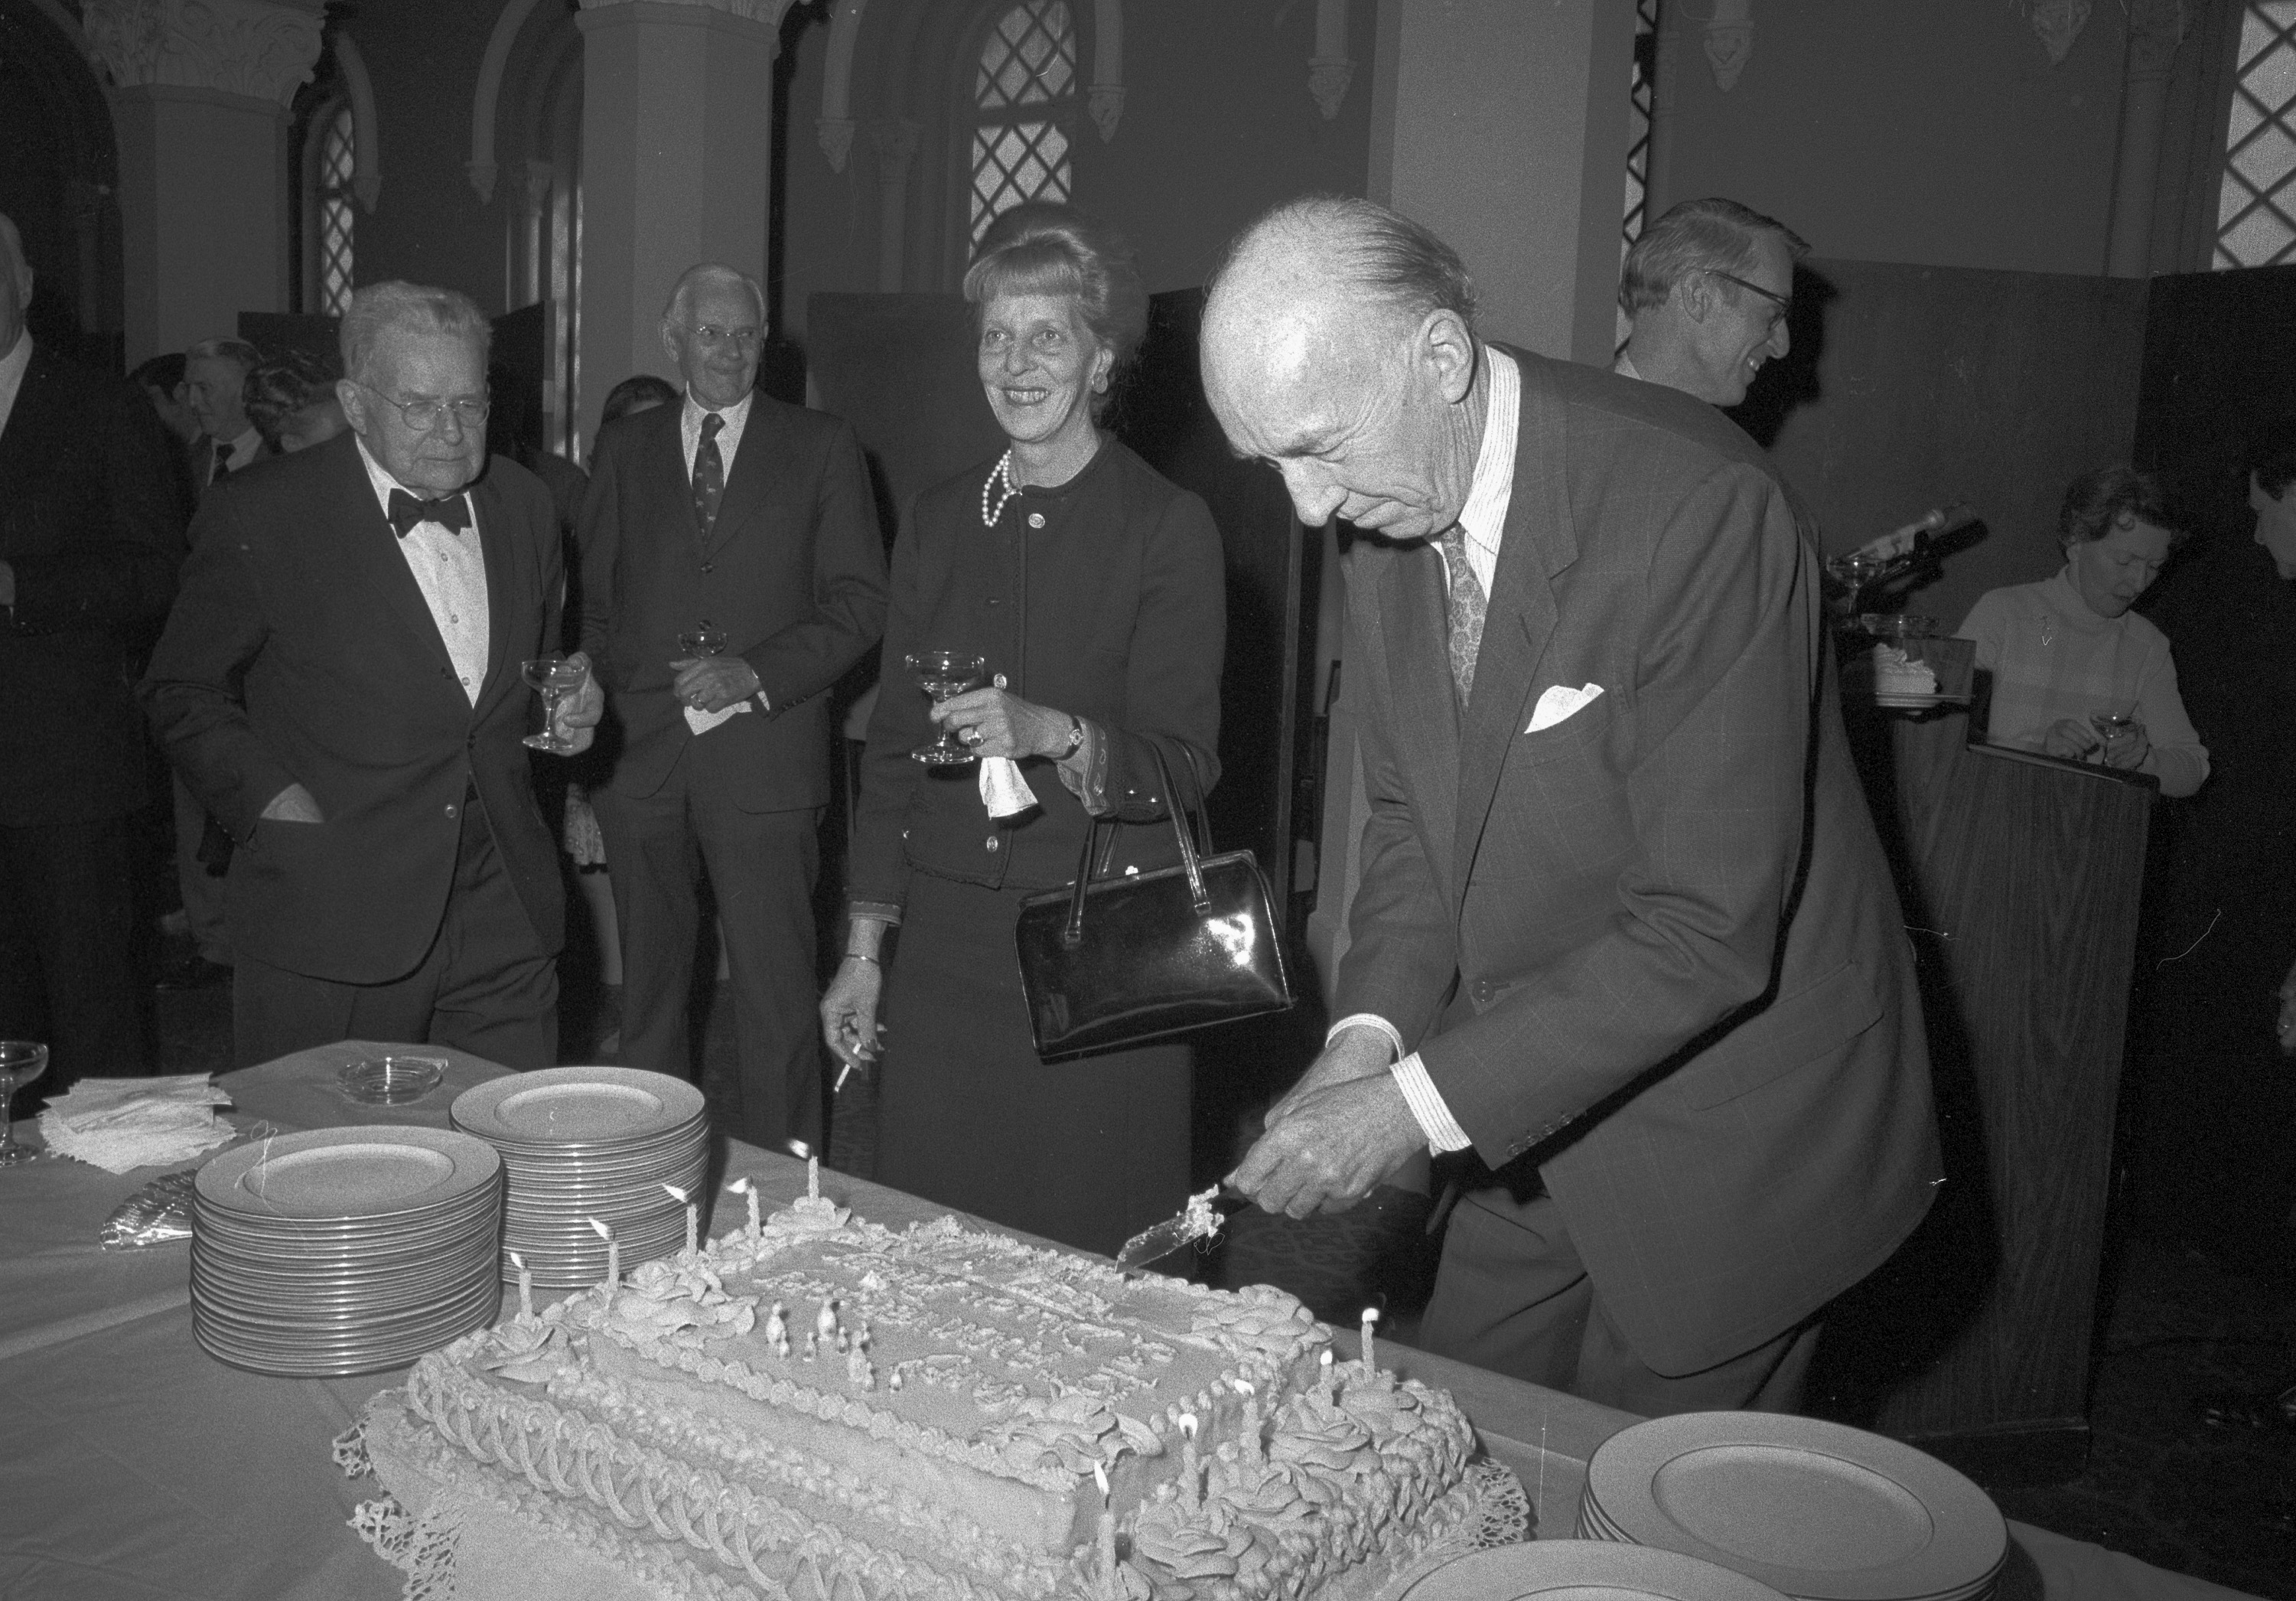 Person standing and cutting a large cake.